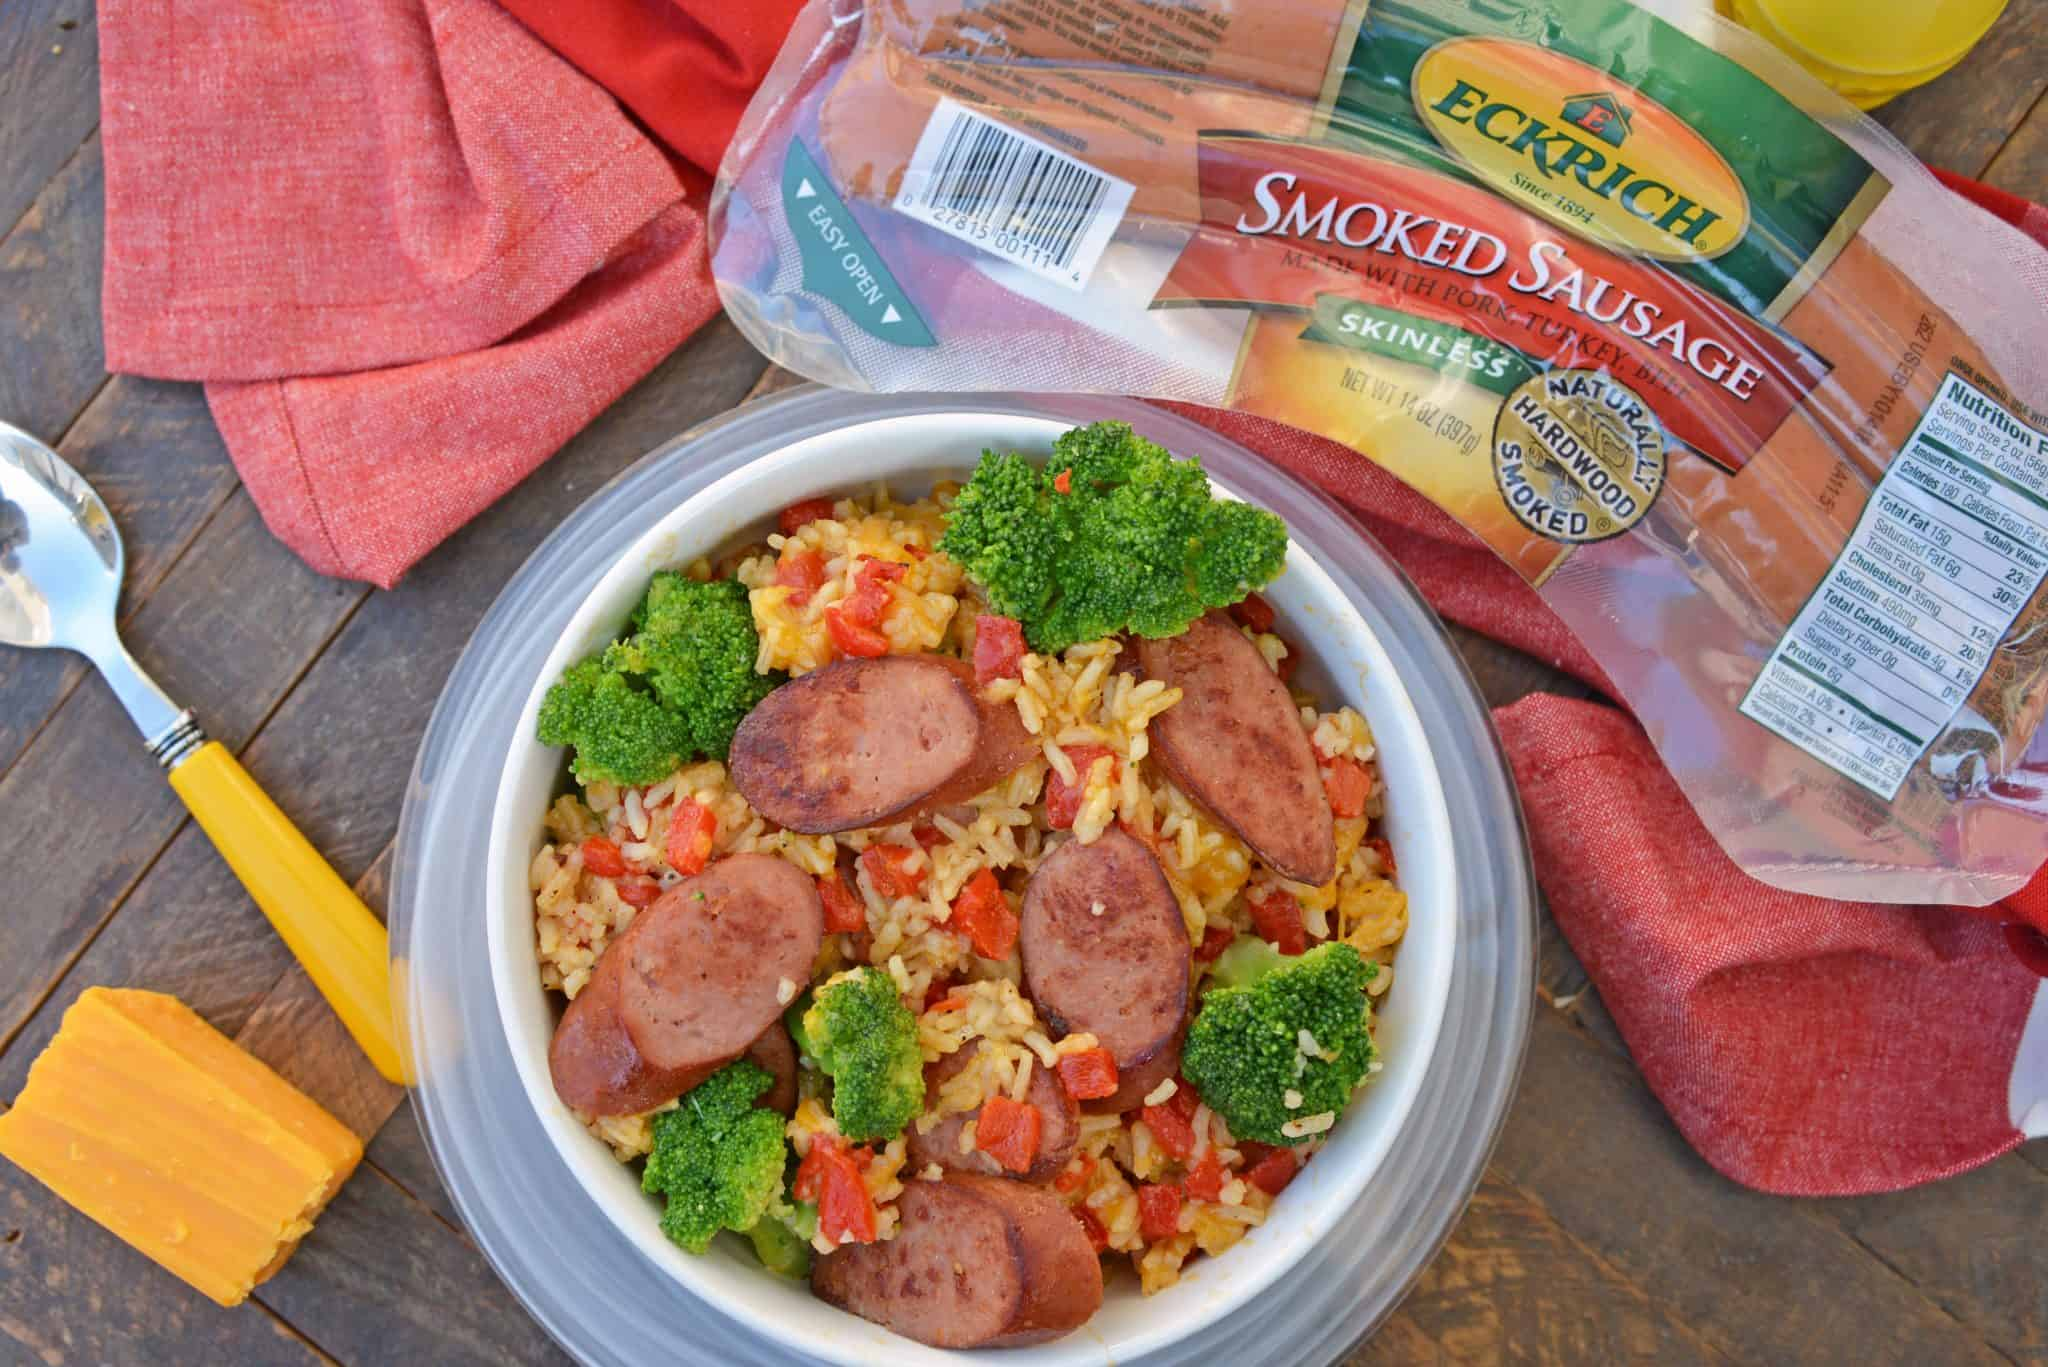 Sharp cheddar cheese tossed with rice, broccoli florets, roasted red pepper and tender Eckrich Smoked Sausage. Dinner is ready in just 15 minutes! #easydinnerideas #skilletmeals #onepandinner www.savoryexperiments.com